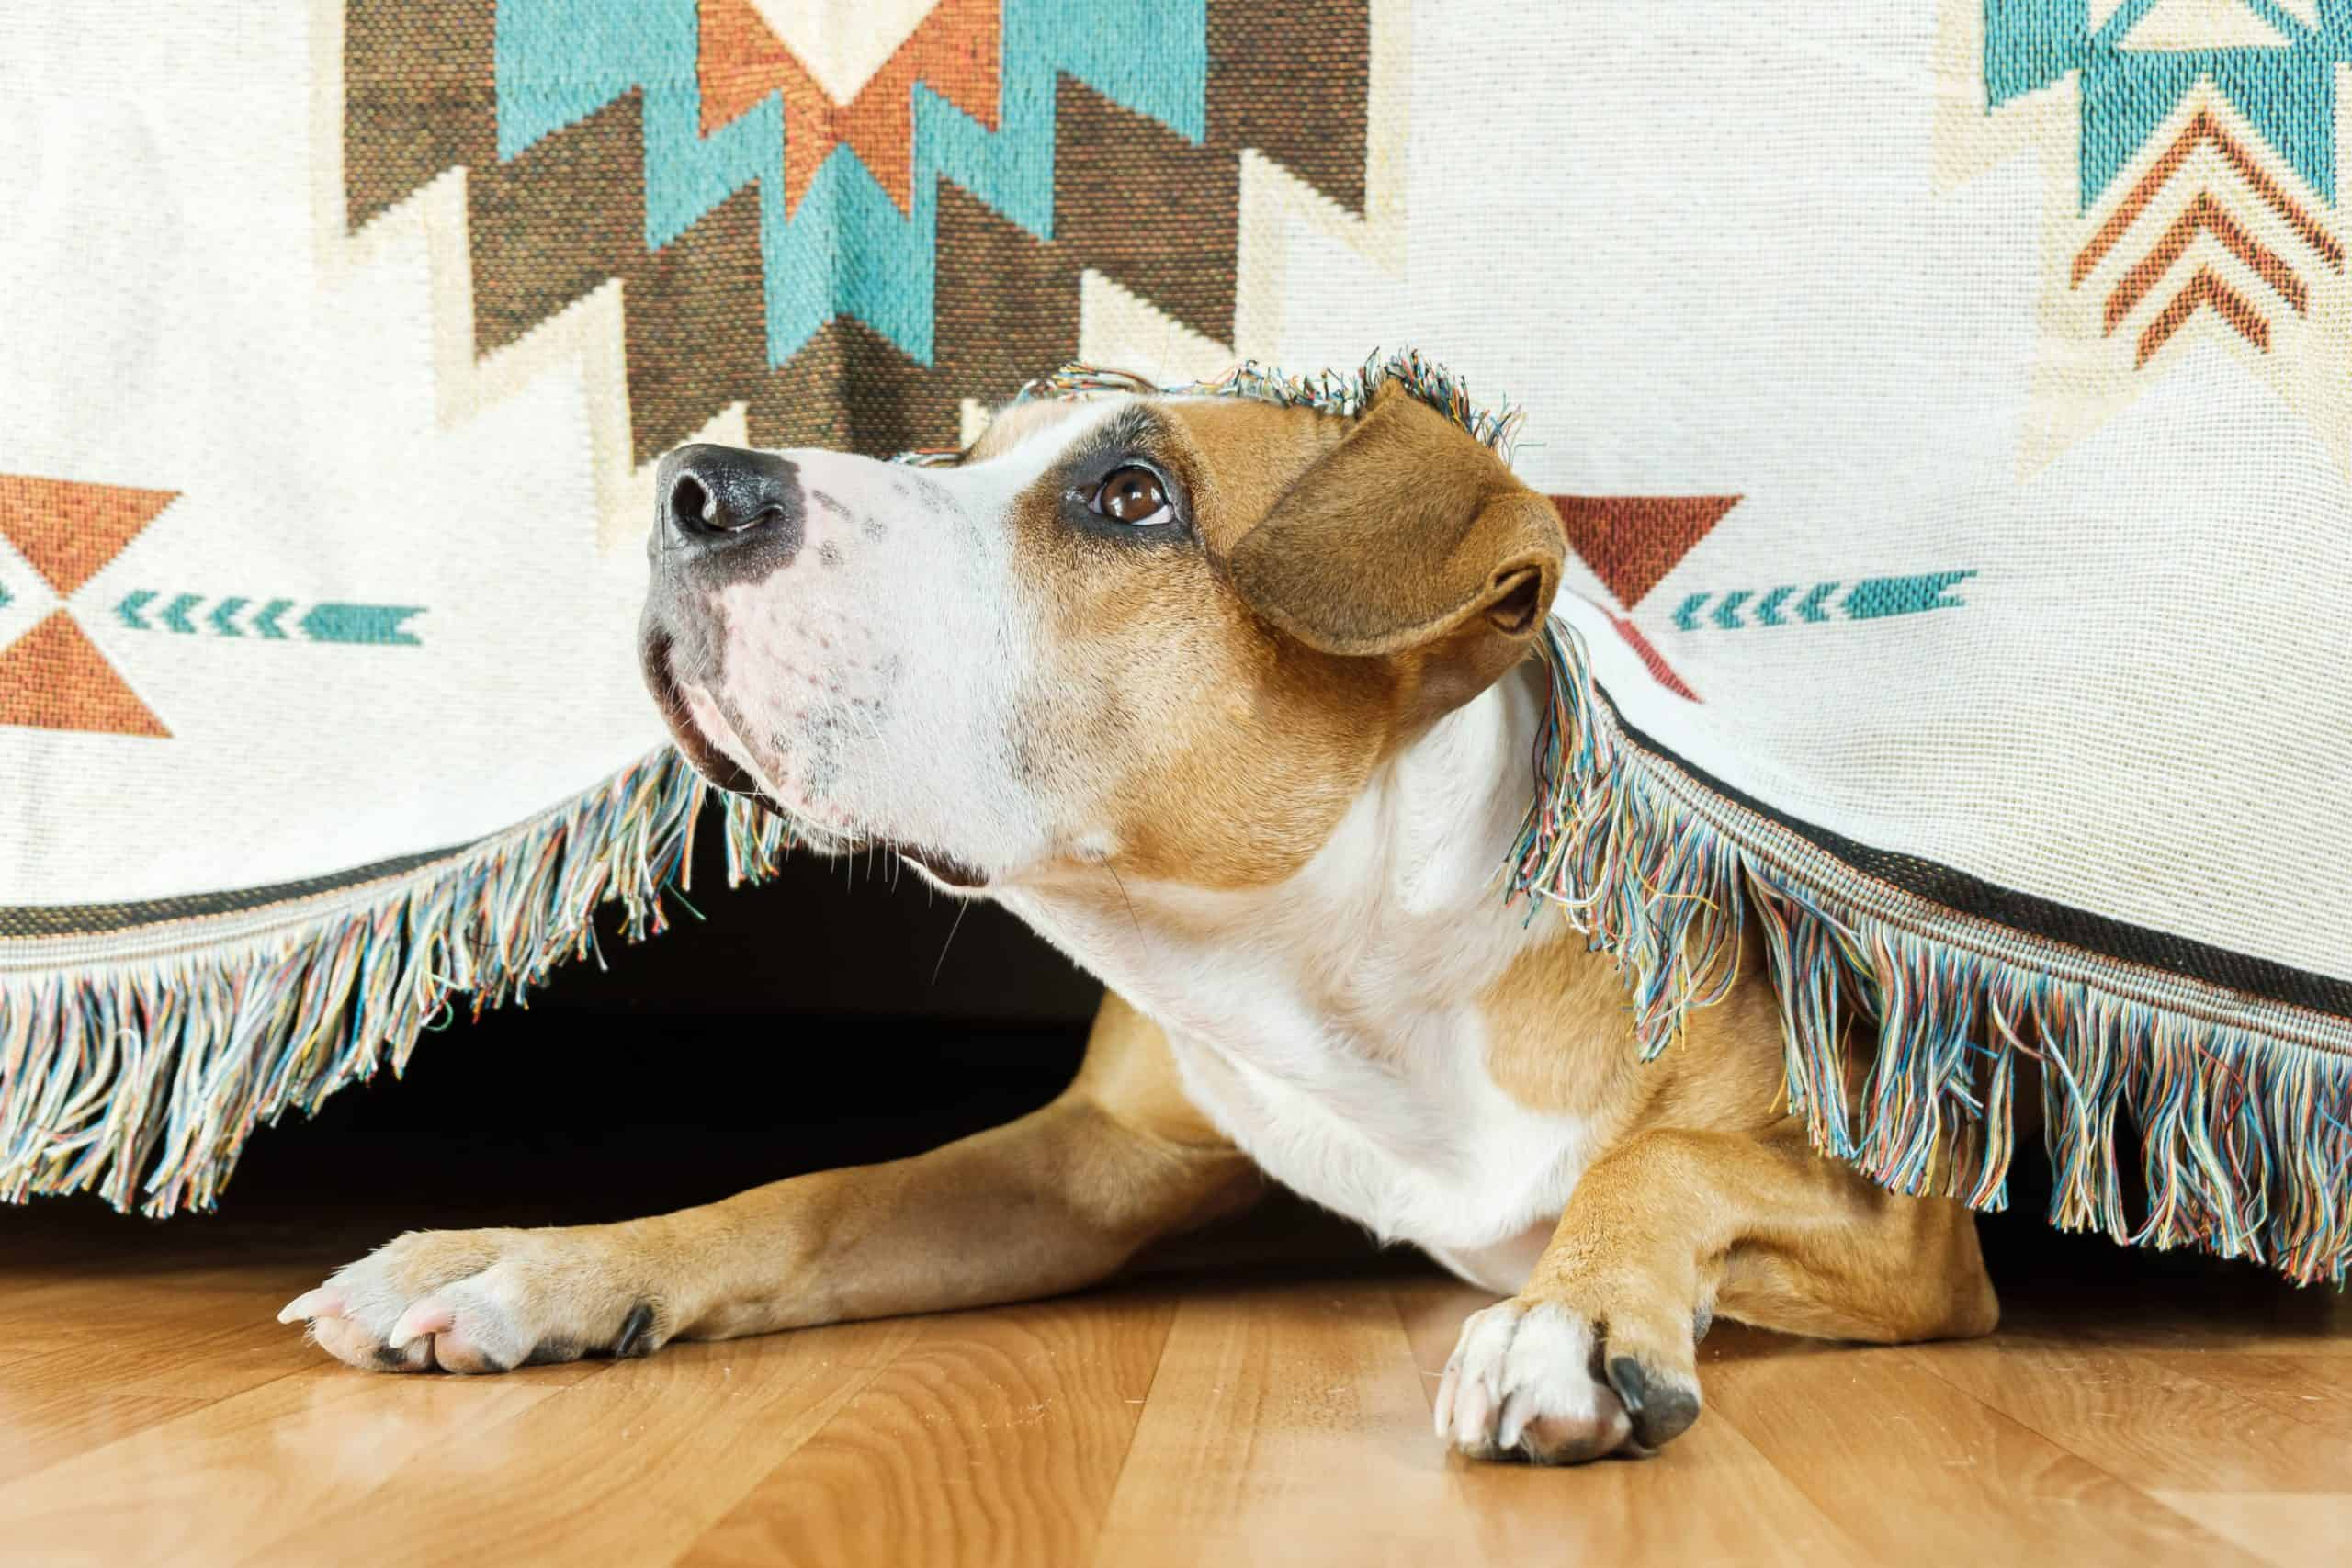 Dog peeks out from under table. Signs of anxiety in dogs can be obvious, like nonstop barking and chewing, or more subtle, like excessive yawning, hiding, or escaping.